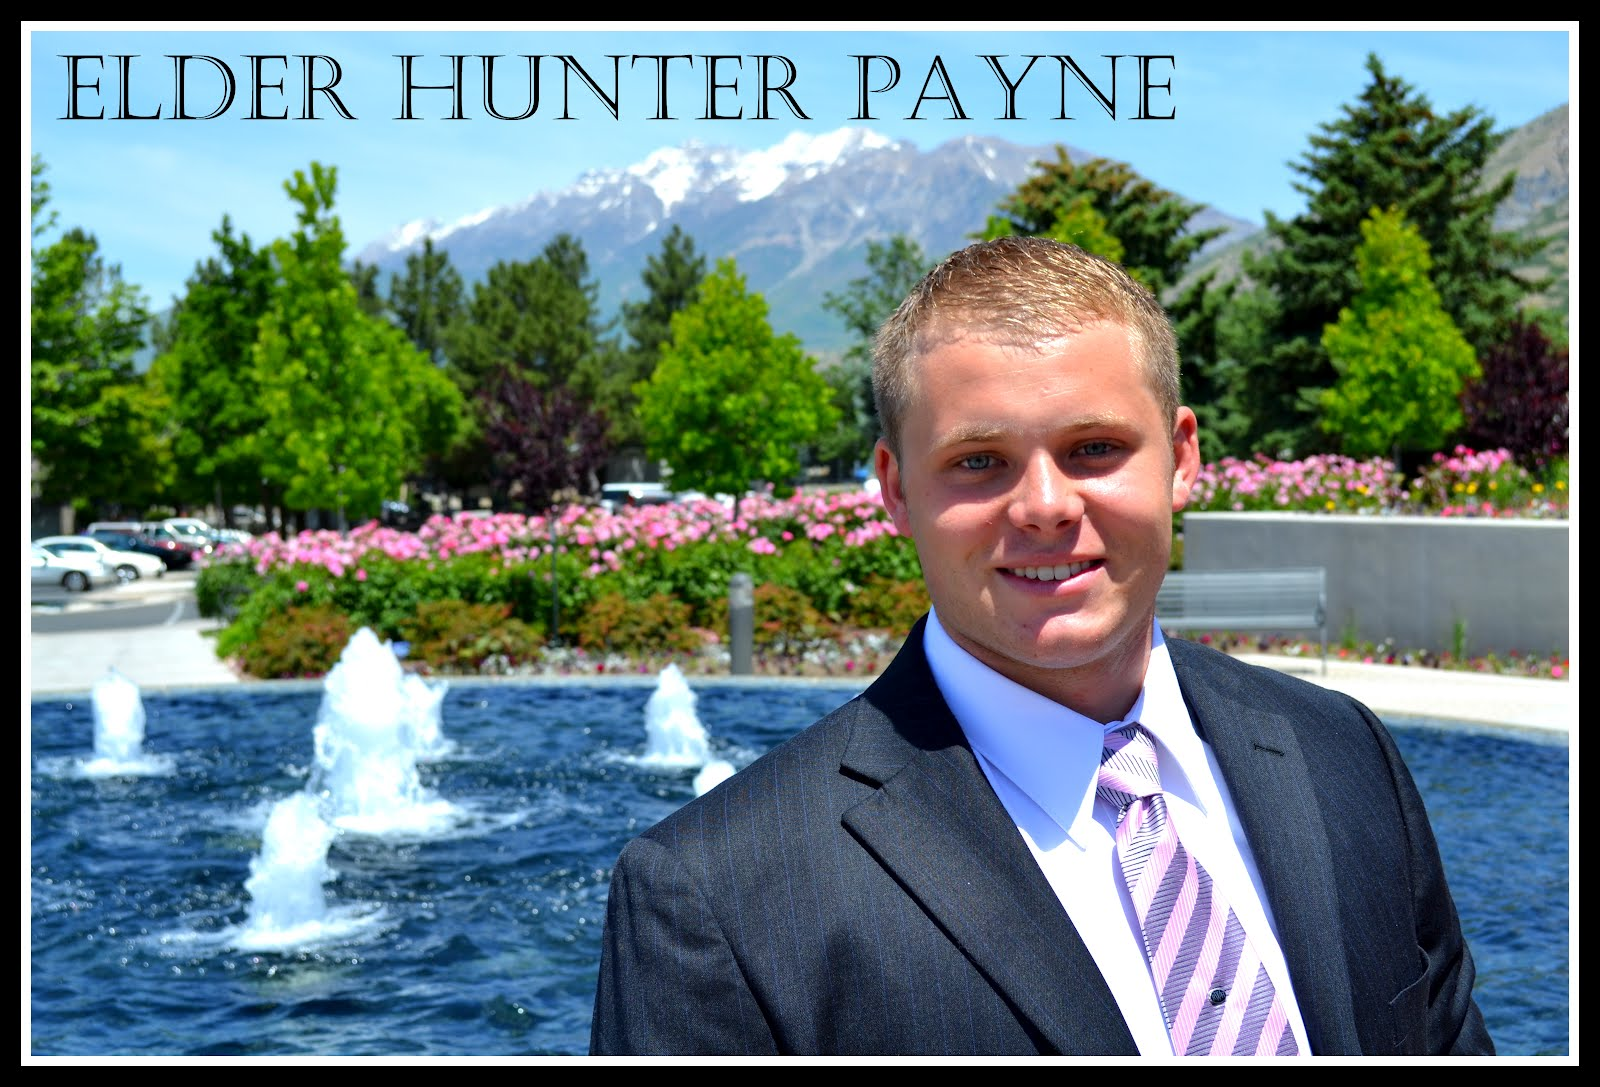 Elder Hunter Payne